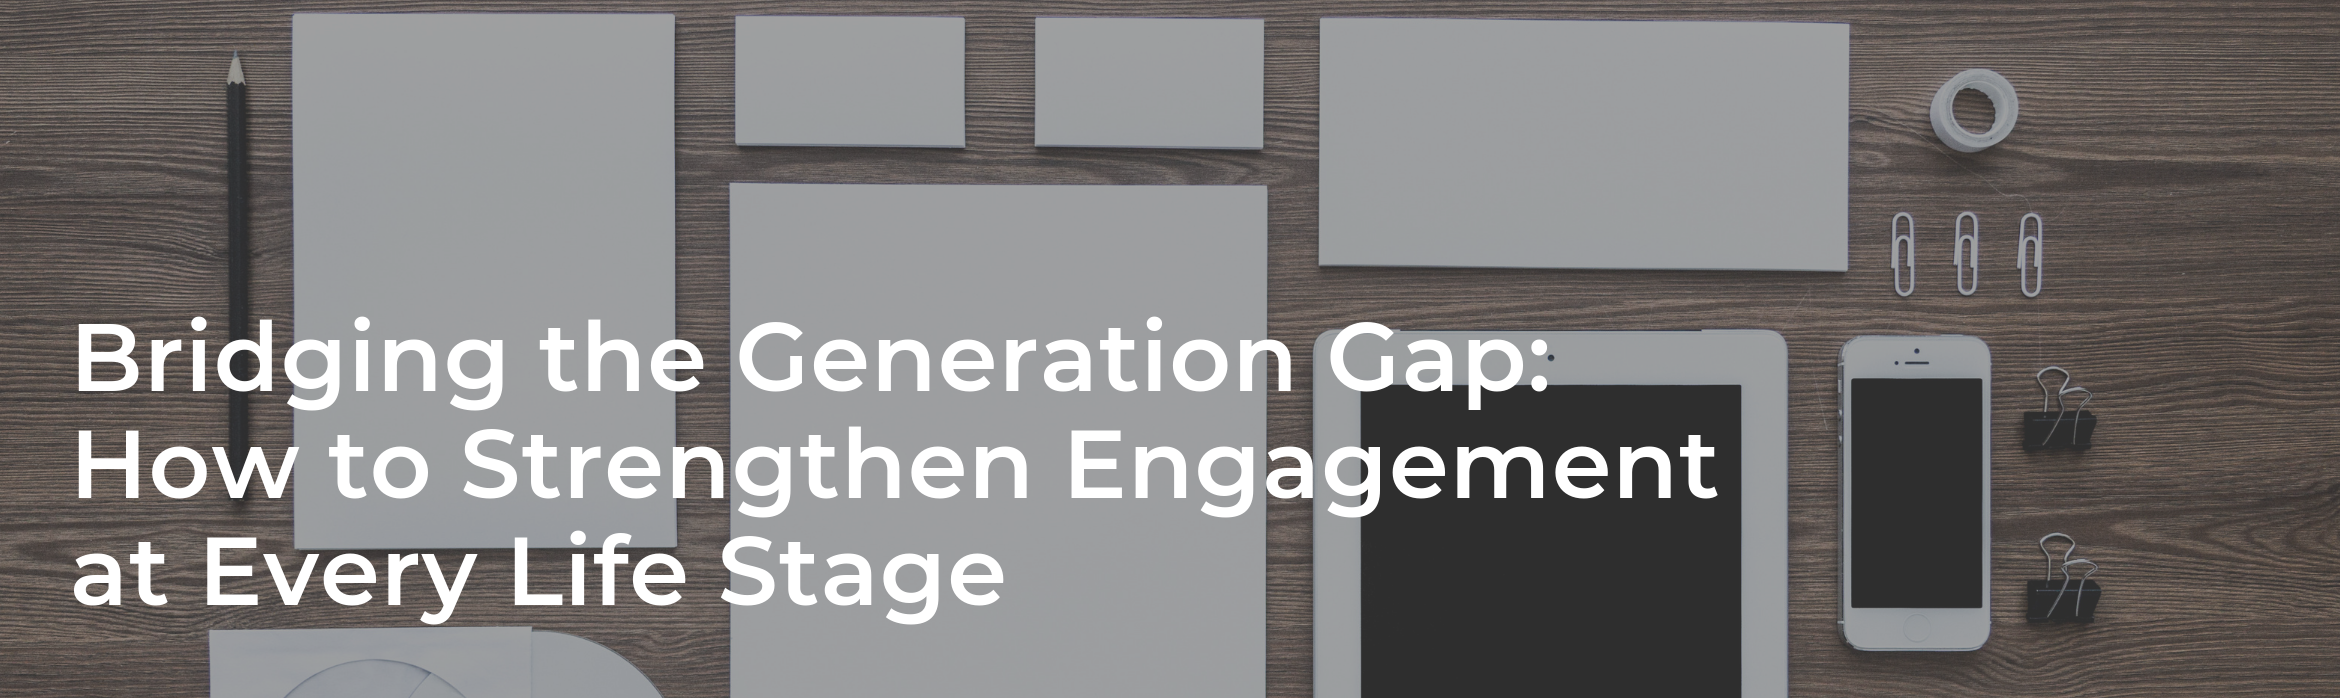 Bridging the Generation Gap: How to Strengthen Engagement at Every Life Stage